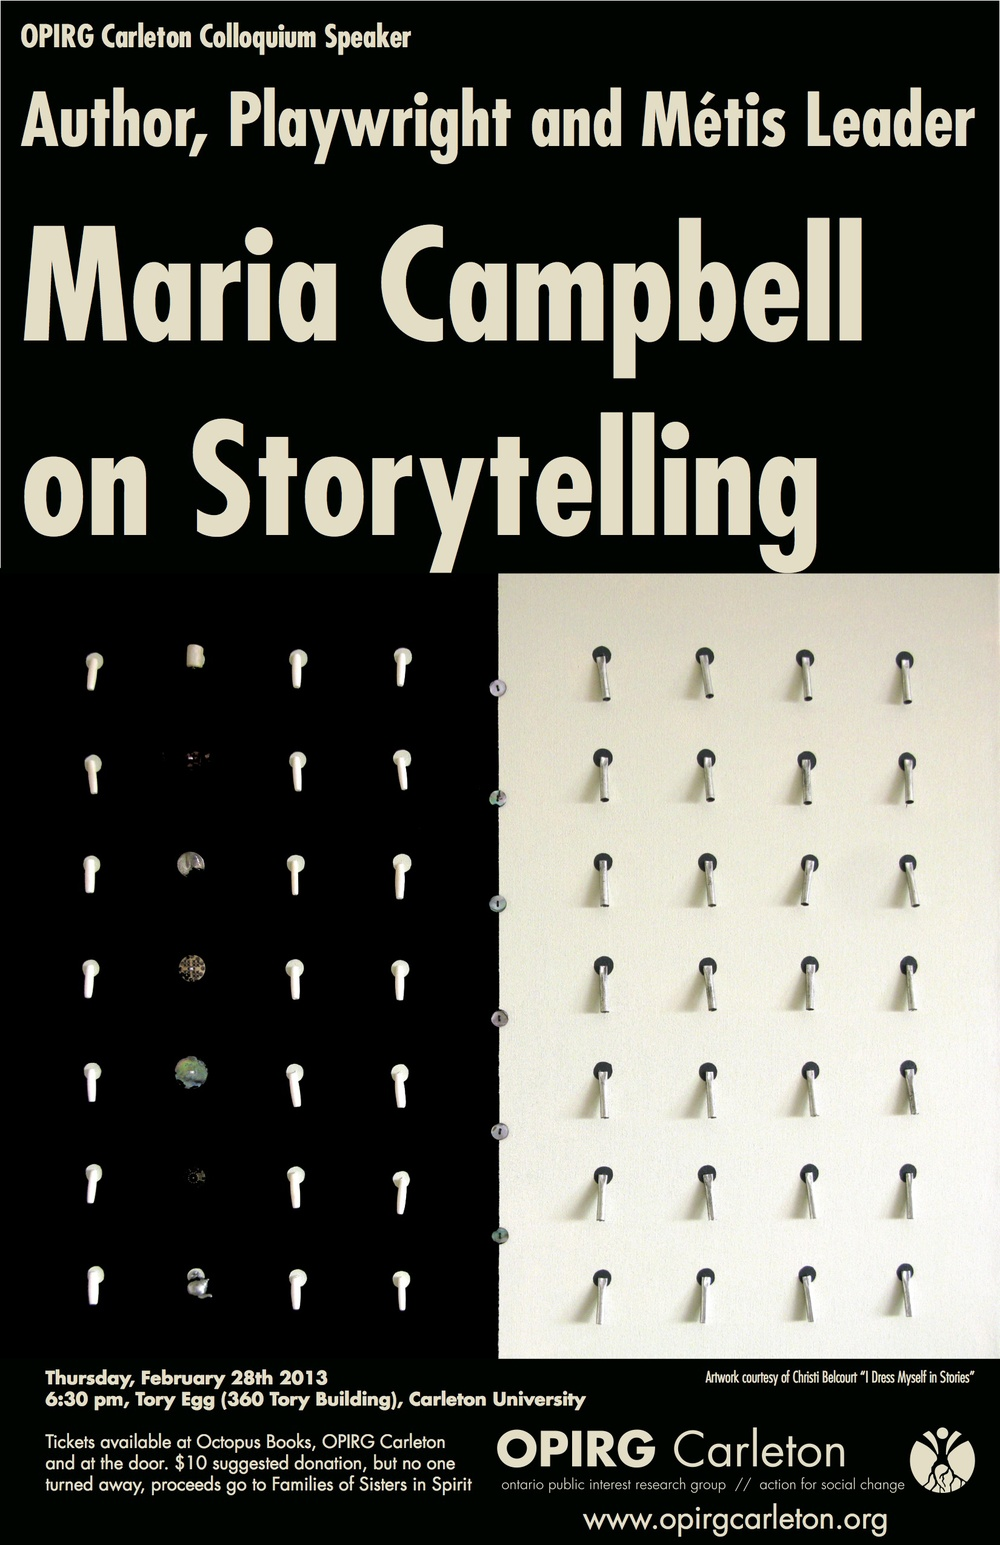 Colloquium Speaker: Maria Campbell: On Storytelling